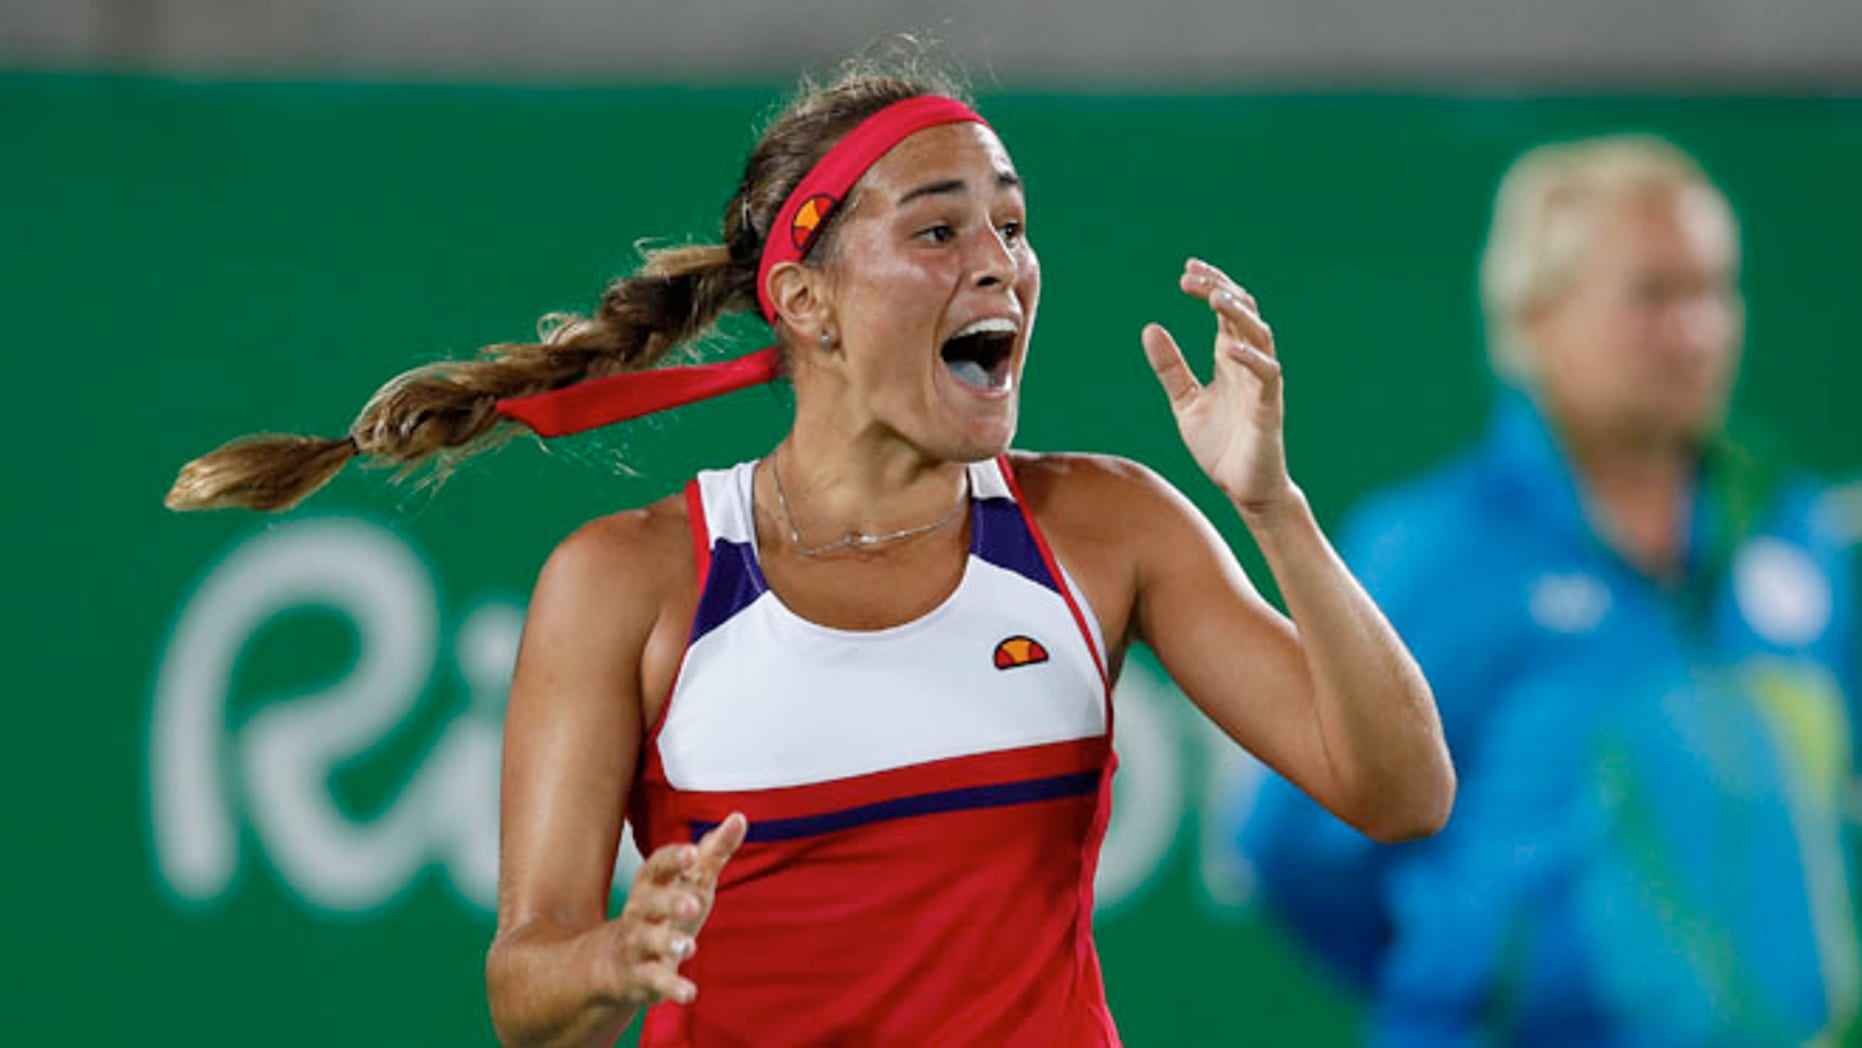 Monica Puig of Puerto Rico reacts after winning the final point of the gold medal match in the women's tennis competition at the 2016 Summer Olympics in Rio de Janeiro, Brazil, Saturday, Aug. 13, 2016. (AP Photo/Vadim Ghirda)